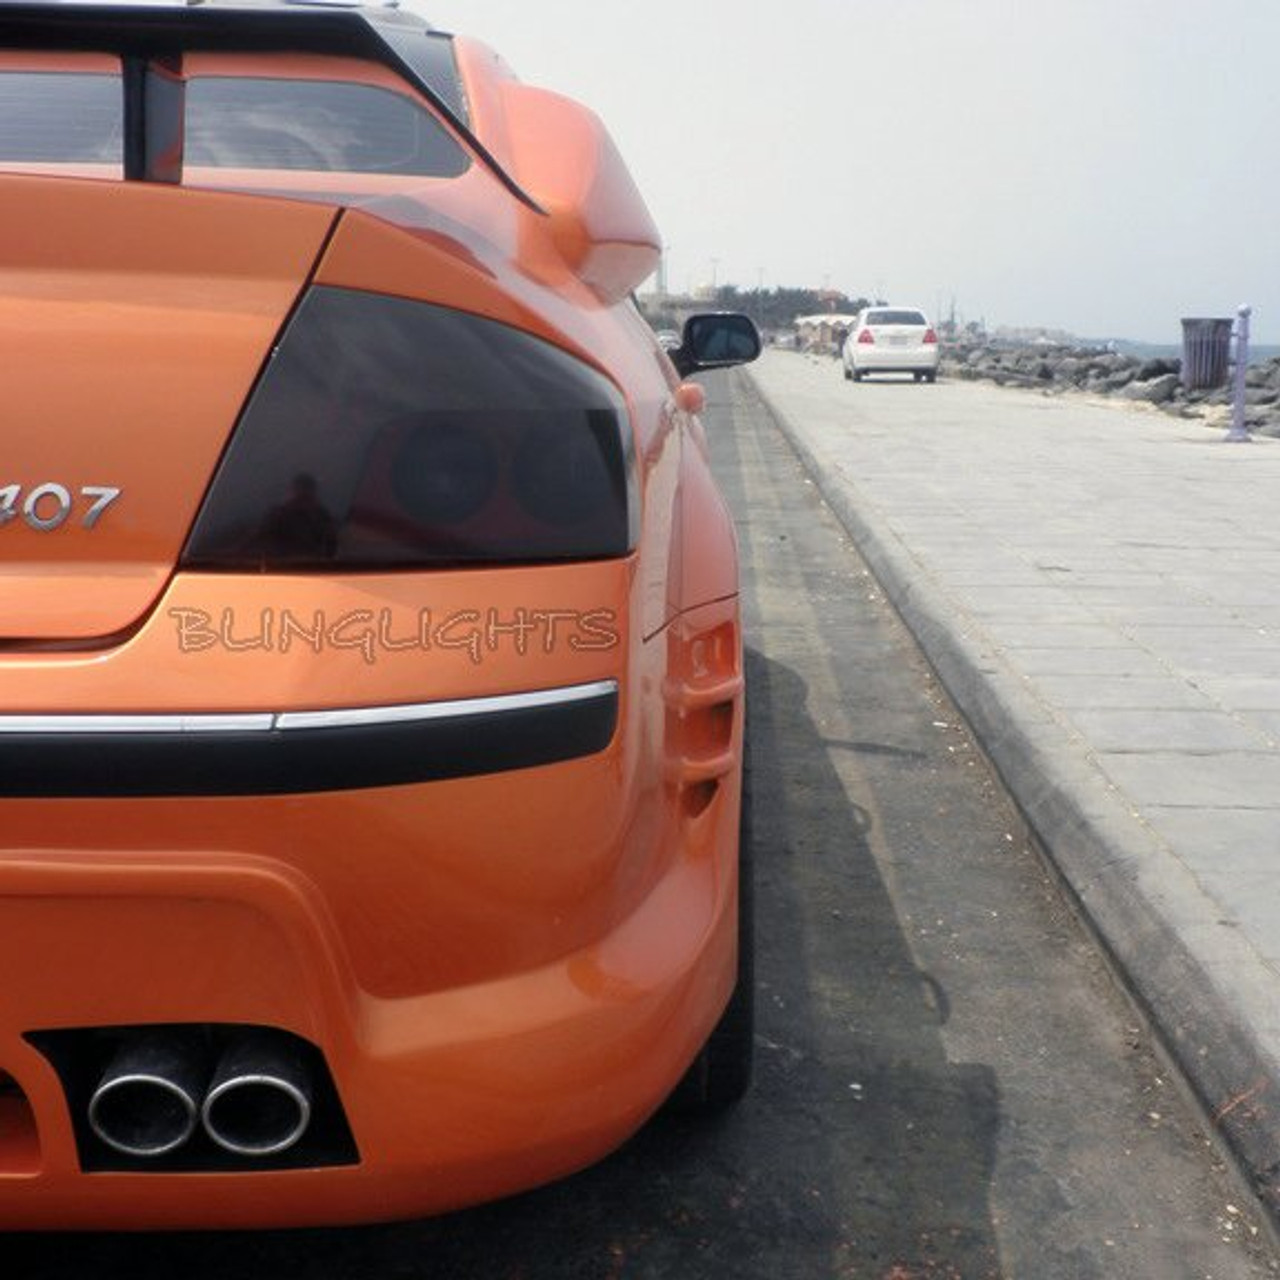 Peugeot 407 Tint Smoke Protection Overlays For Taillamps Taillights Tail Lamps Lights Tinted Film Blinglights Com